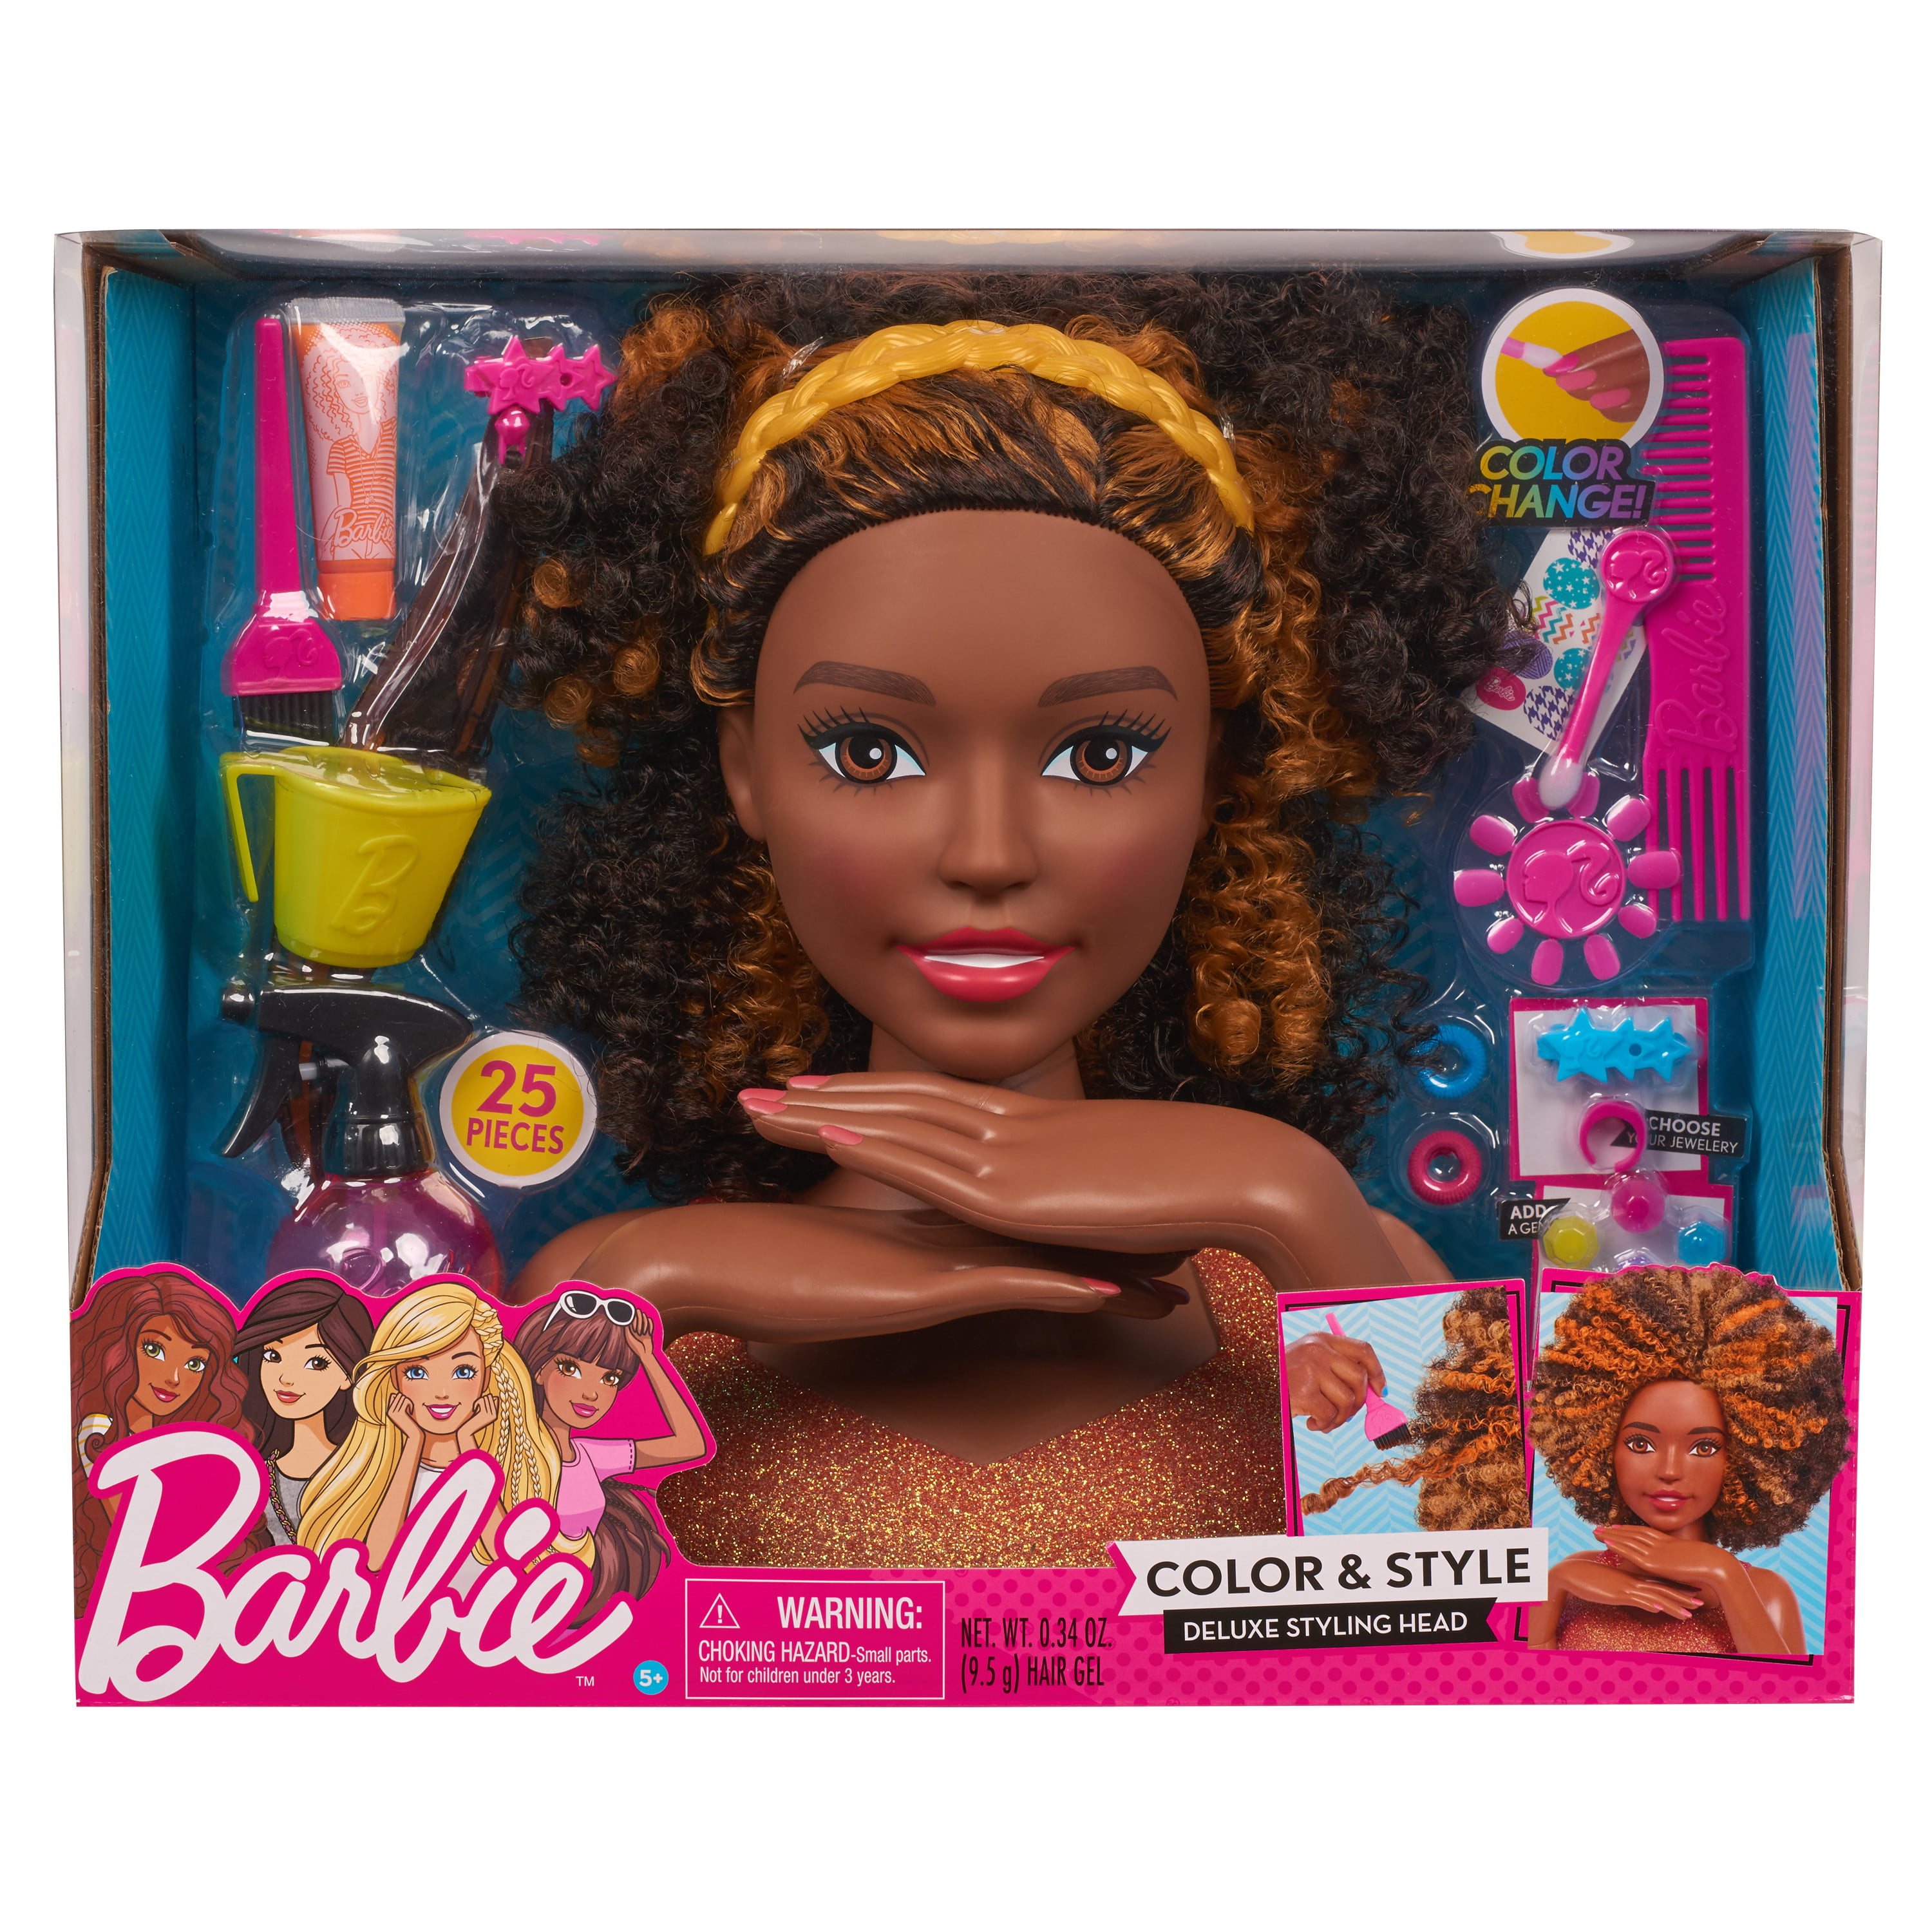 Barbie Color Style Deluxe Styling Head Curly Hair Walmart Com Walmart Com